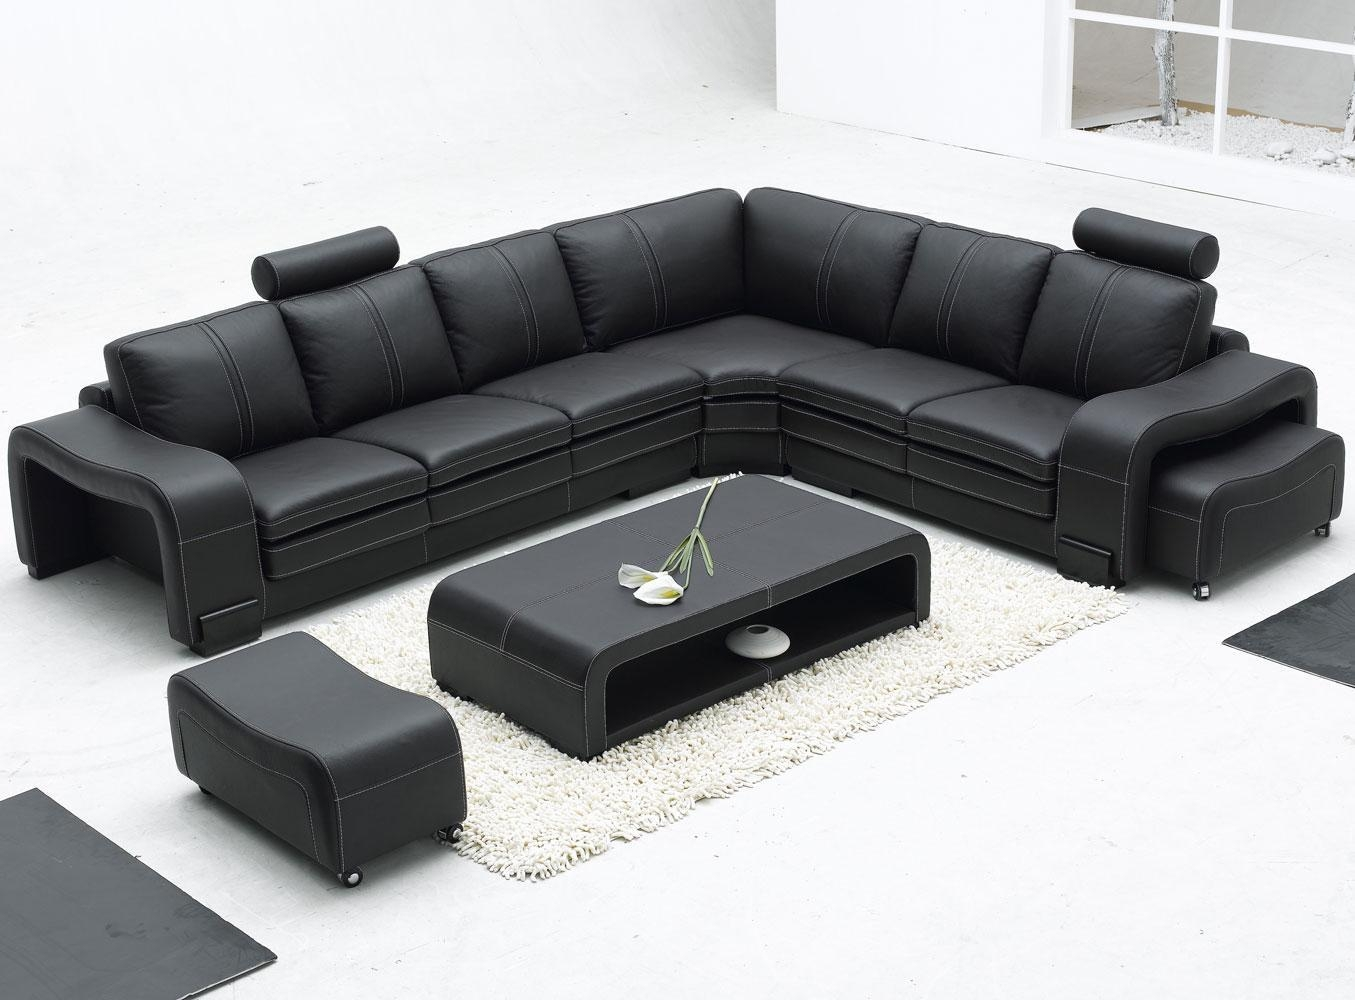 Modern-Black-Leather-Sectional-Sofa - S3Net - Sectional Sofas Sale with Black Leather Sectional Sleeper Sofas